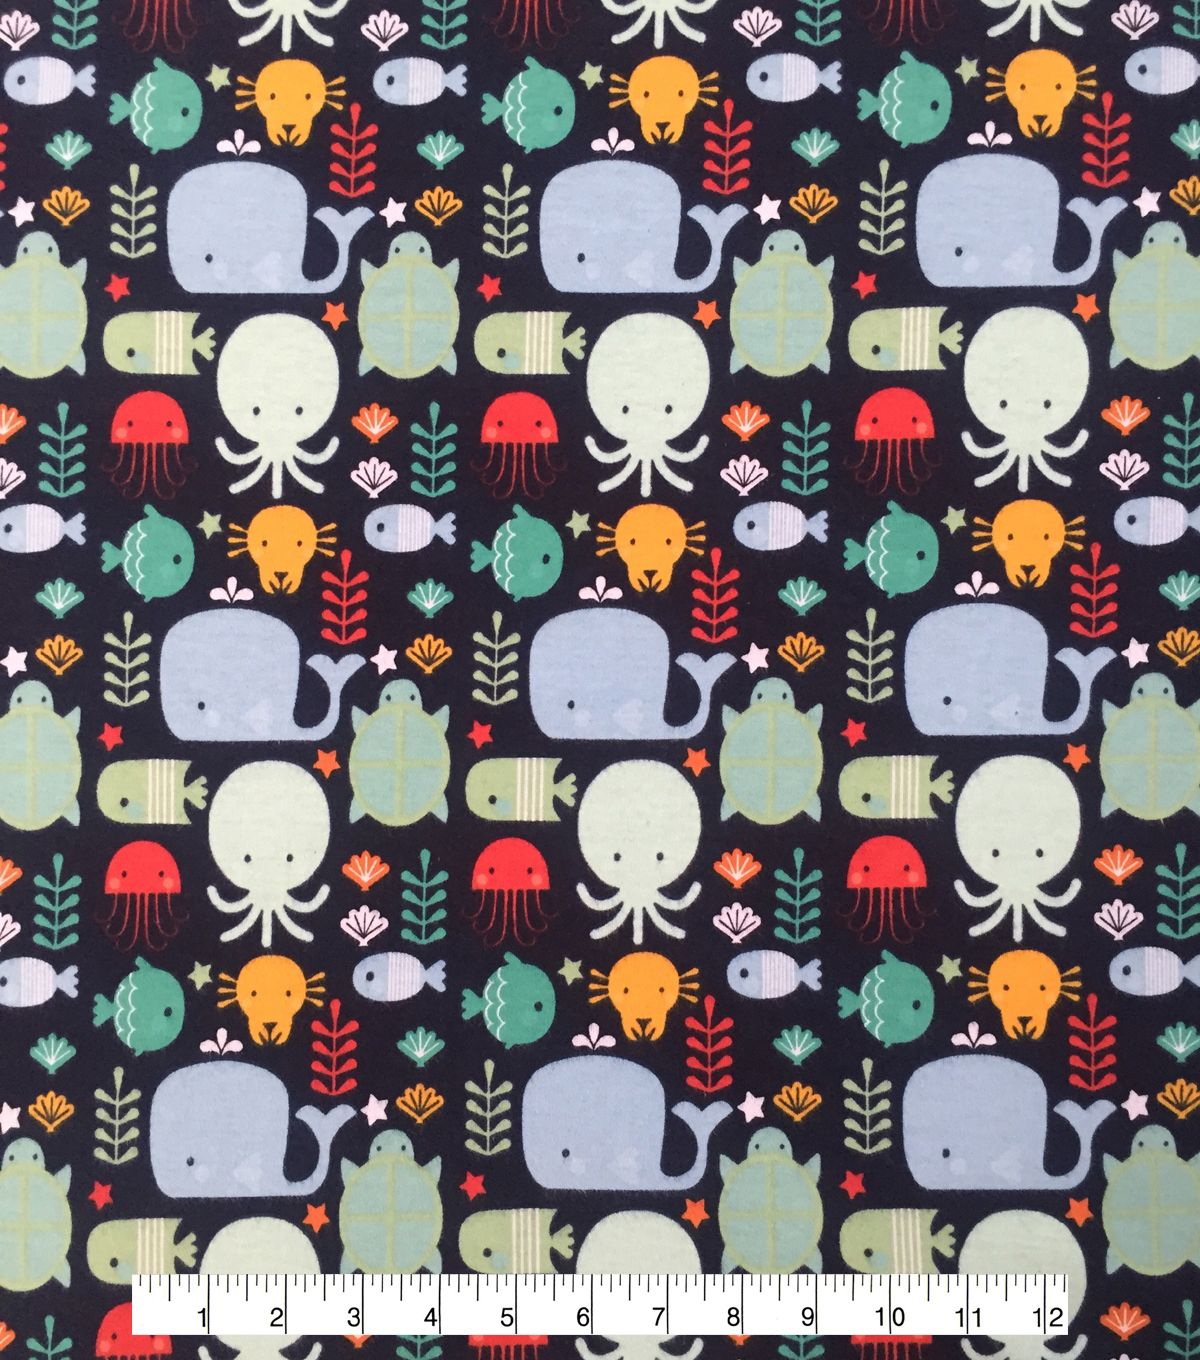 Doodles Juvenile Apparel Fabric 57\'\' - Bubble Sea Life